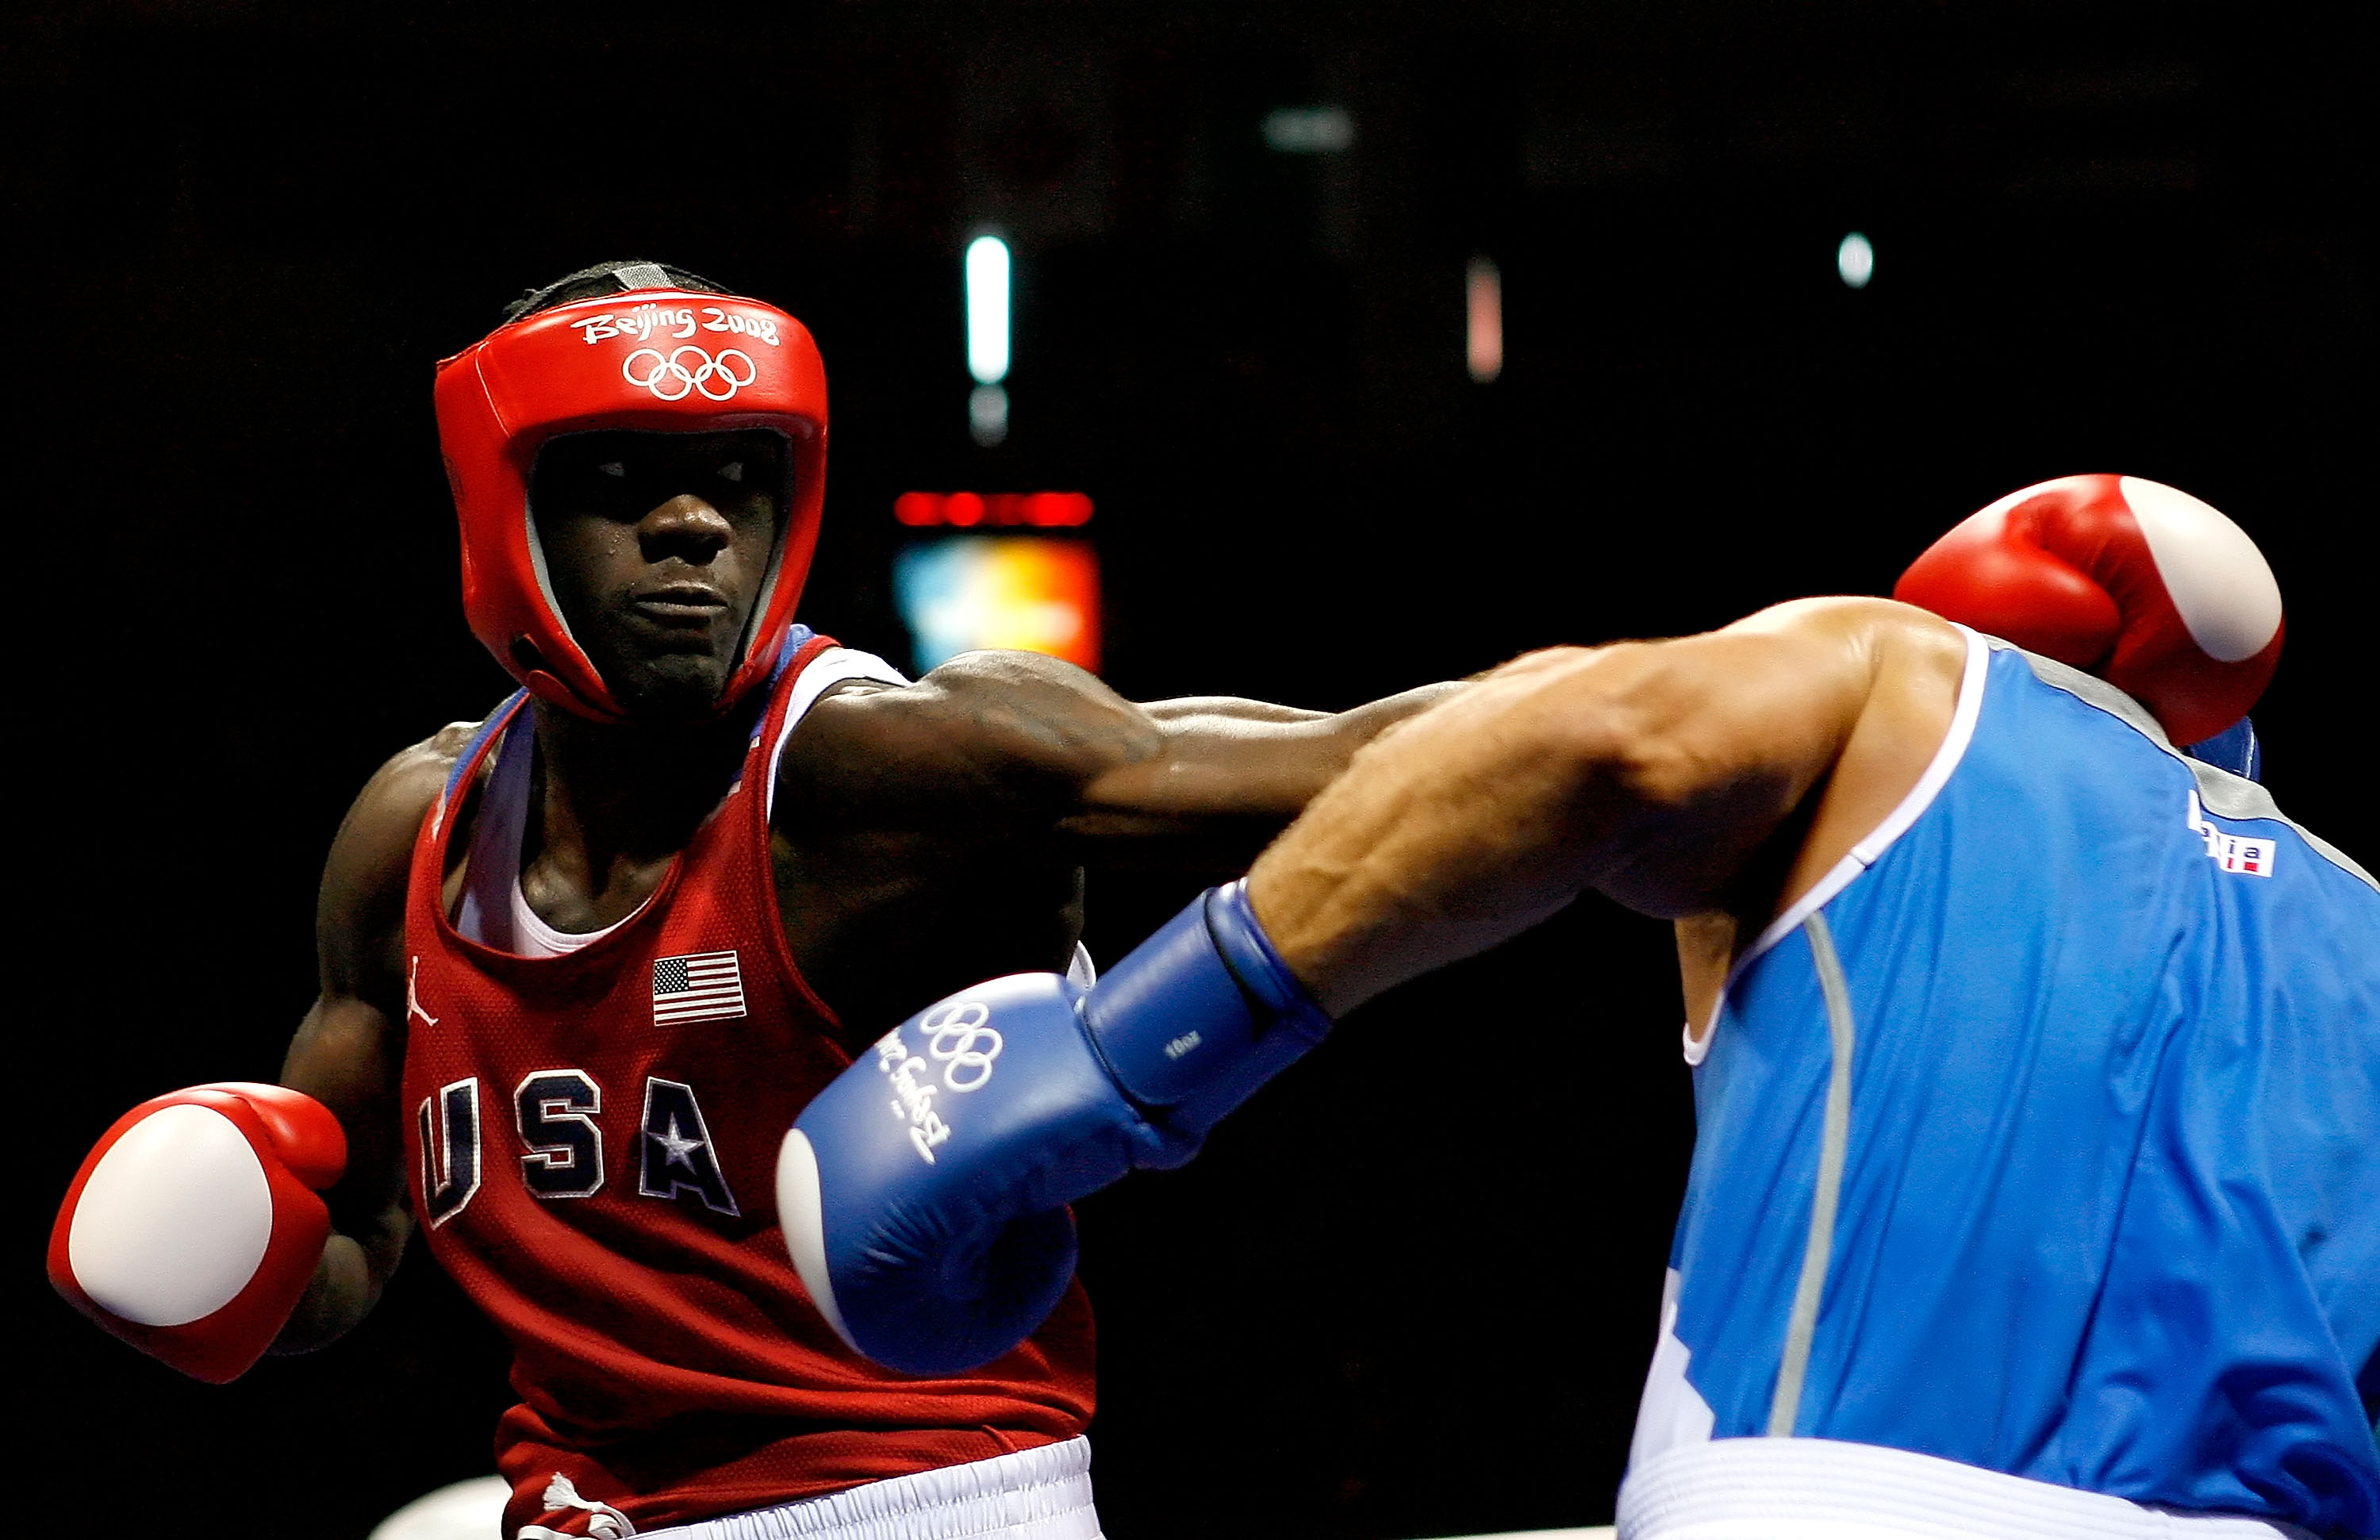 BEIJING - AUGUST 22:  Clemente Russo of Italy (blue) fights Deontay Wilder of the United States (red) in the Men's Heavy (91kg) Semifinal at the Workers' Indoor Arena on Day 14 of the Beijing 2008 Olympic Games on August 22, 2008 in Beijing, China. Russo